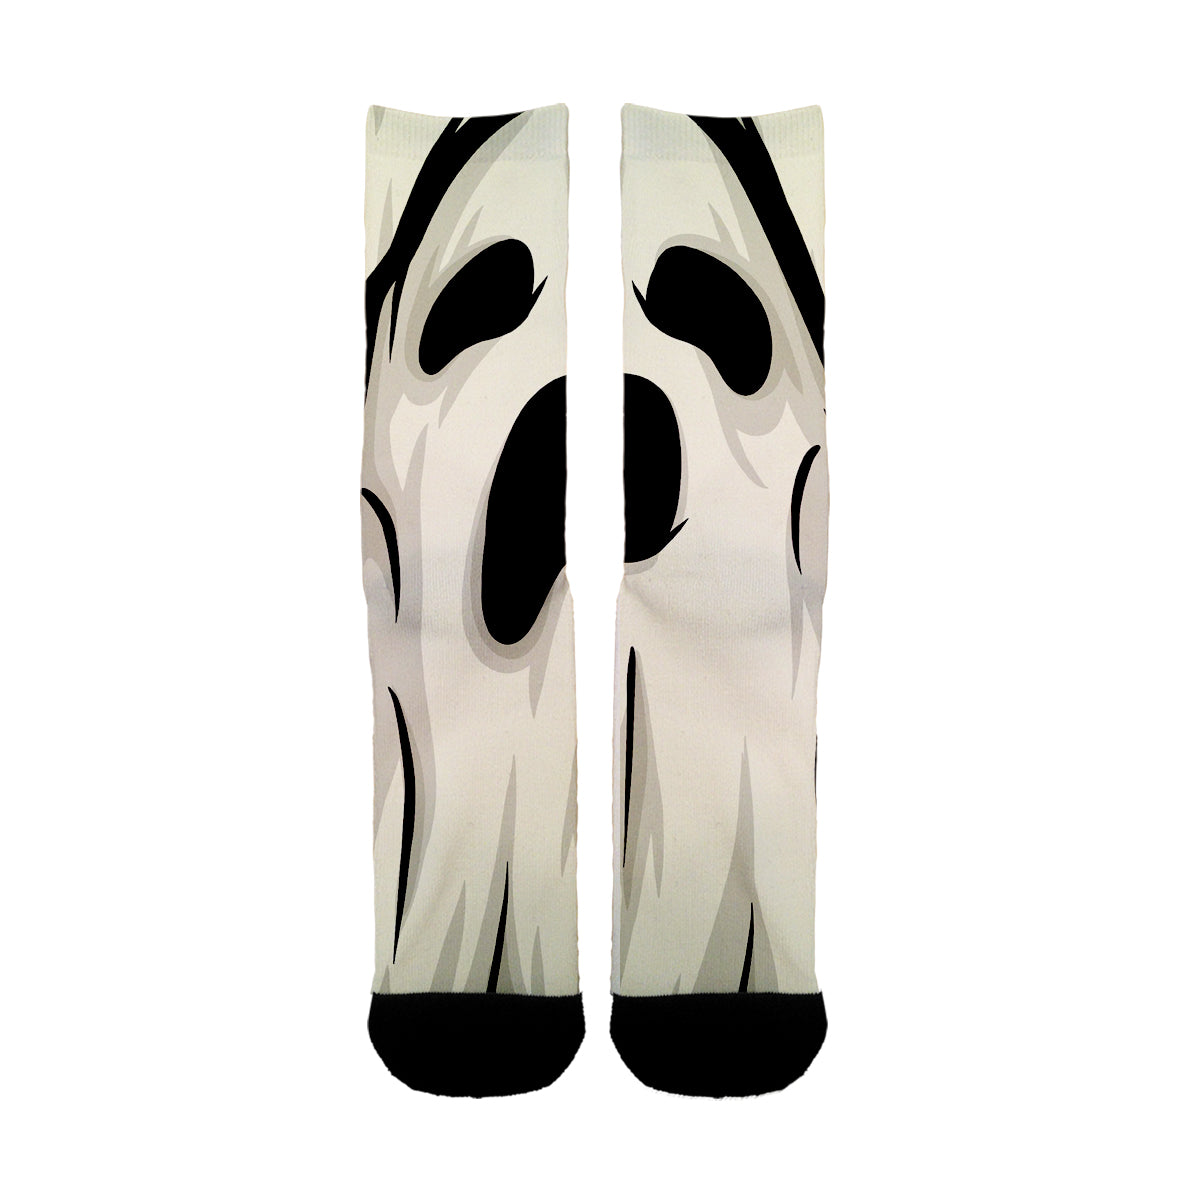 Ghost Socks